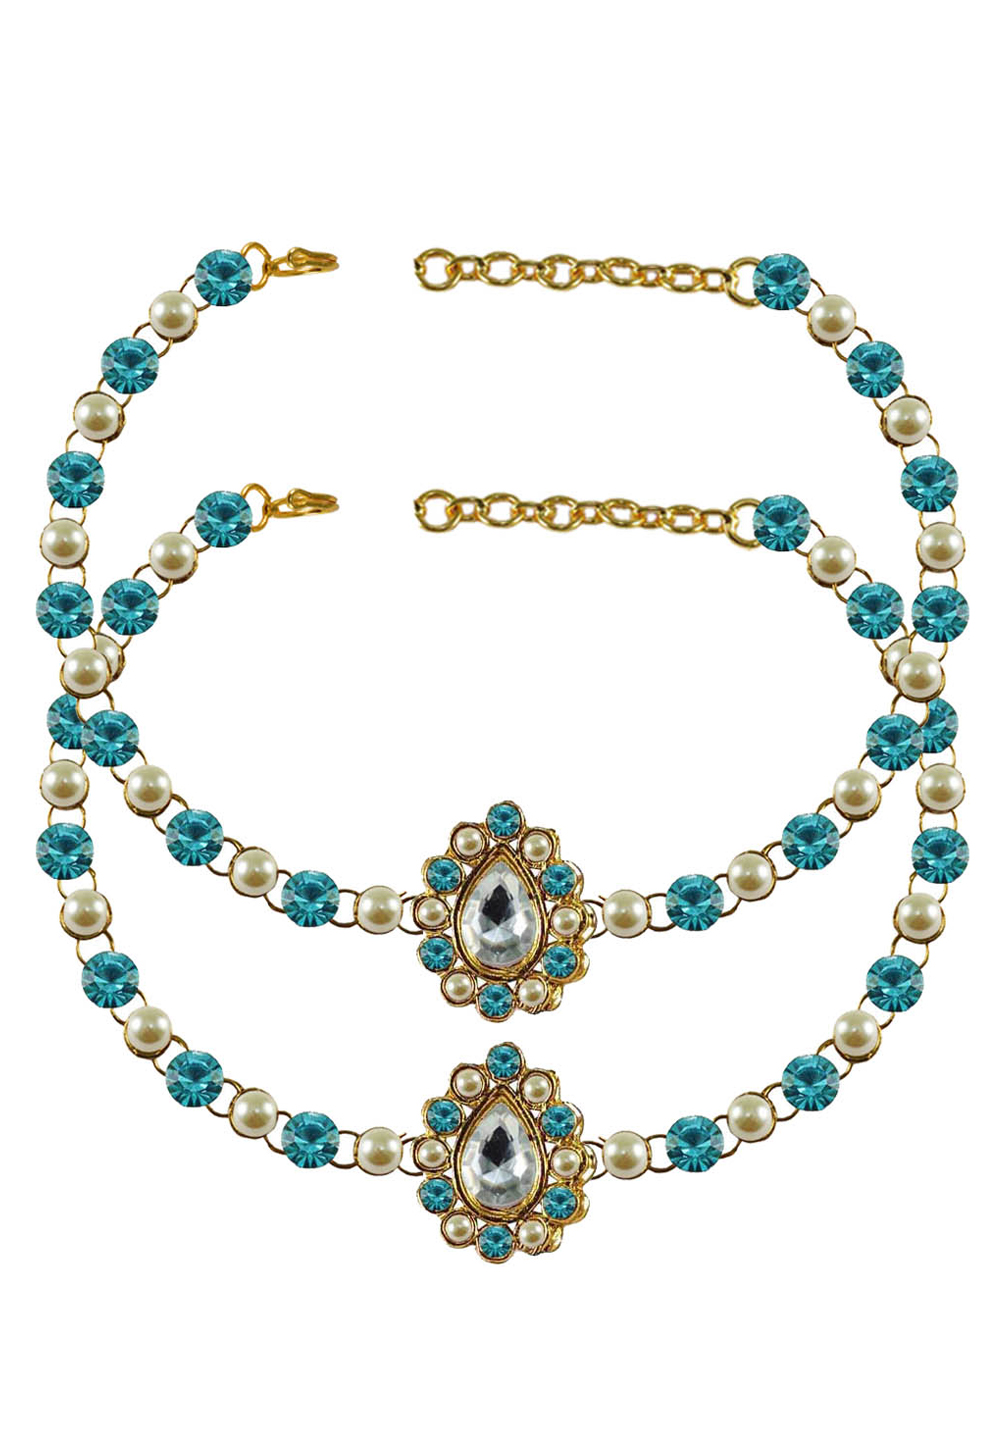 Blue Brass Gold Plated Anklets 171370